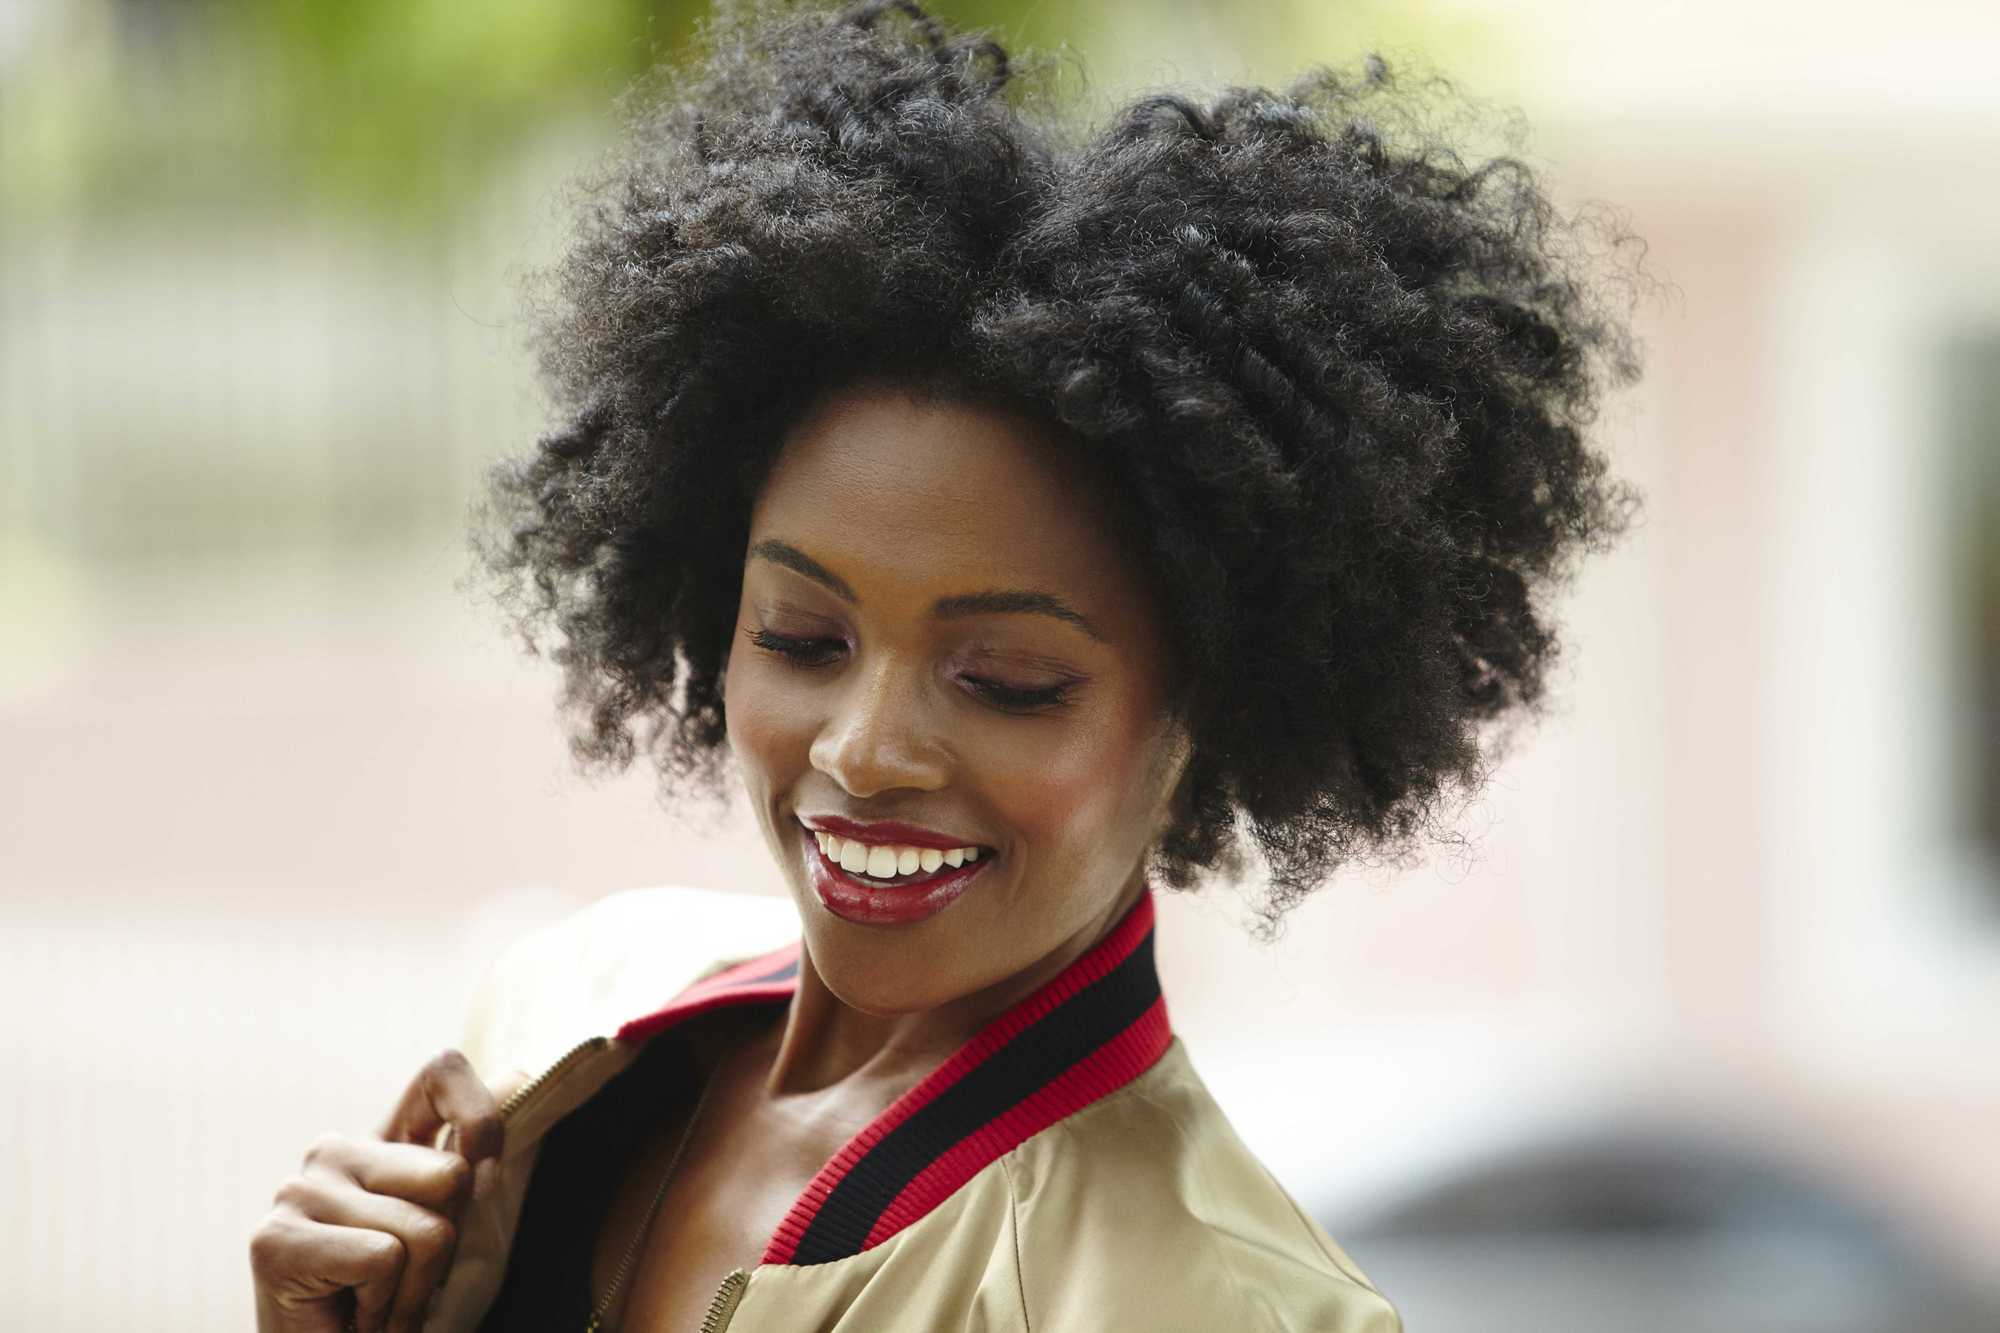 Easy natural hairstyles: Close up shot of woman with a twist out natural hair, wearing a bomber jacket and posing outside.